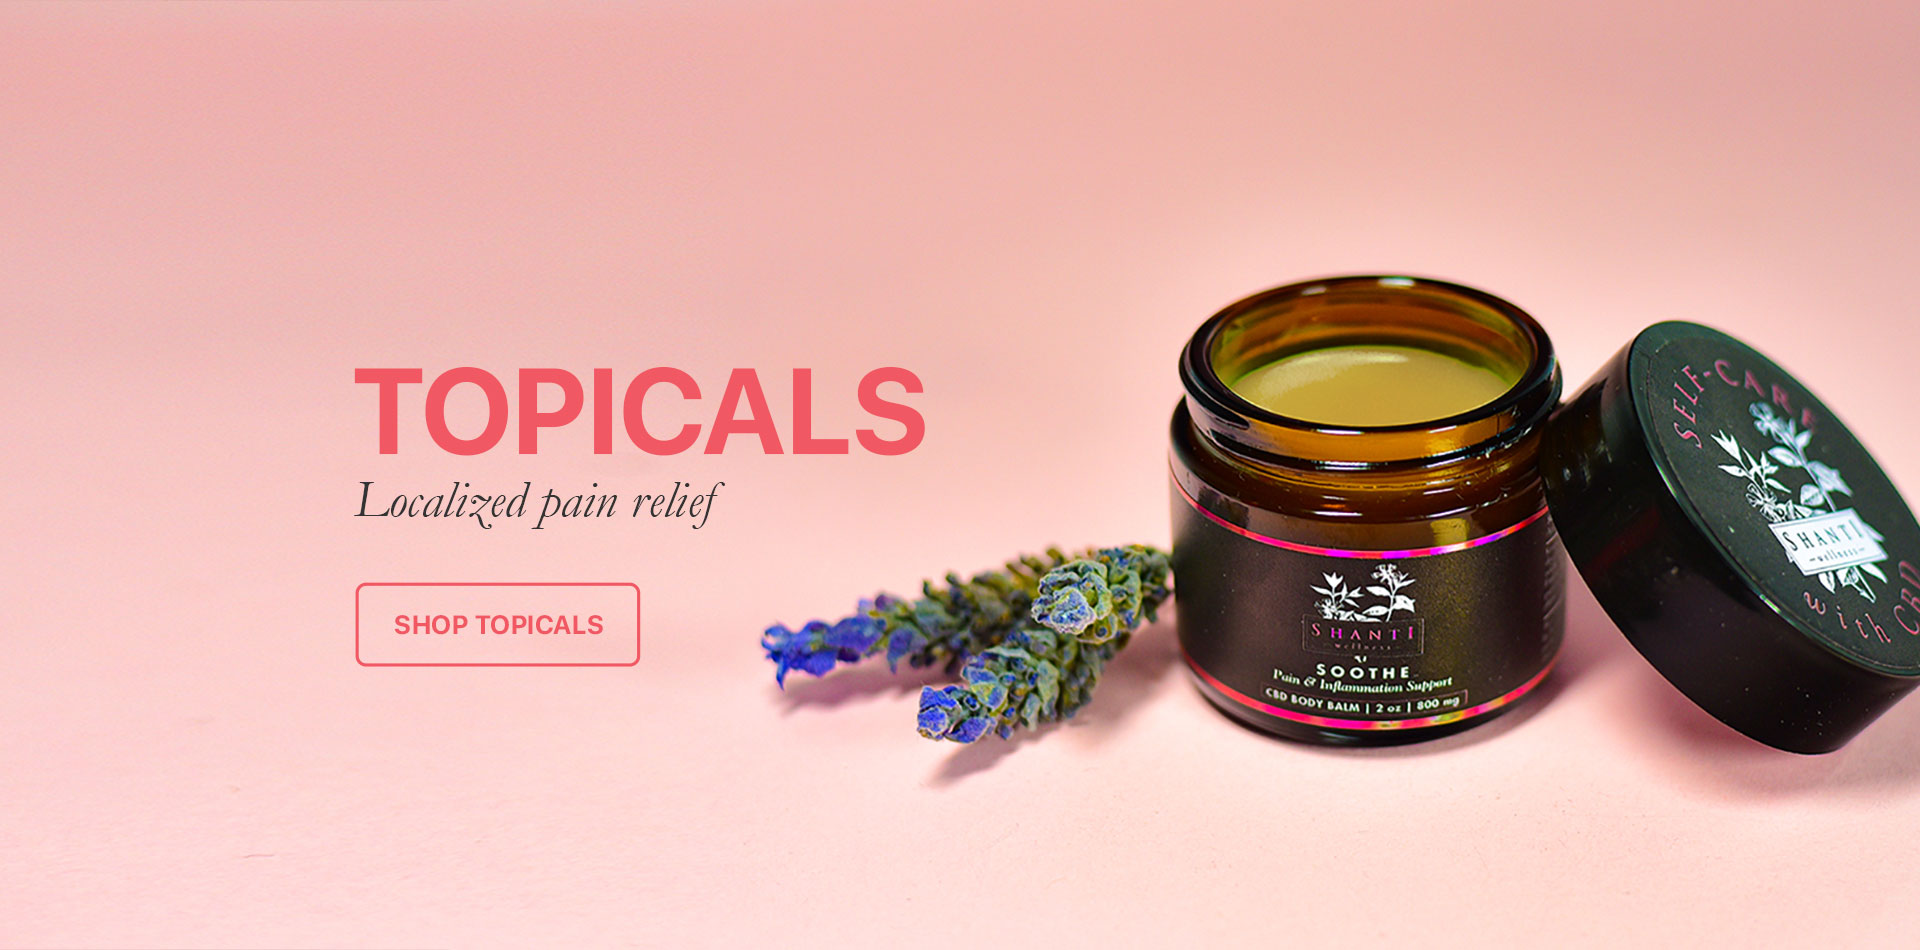 Topicals Localized pain Relief